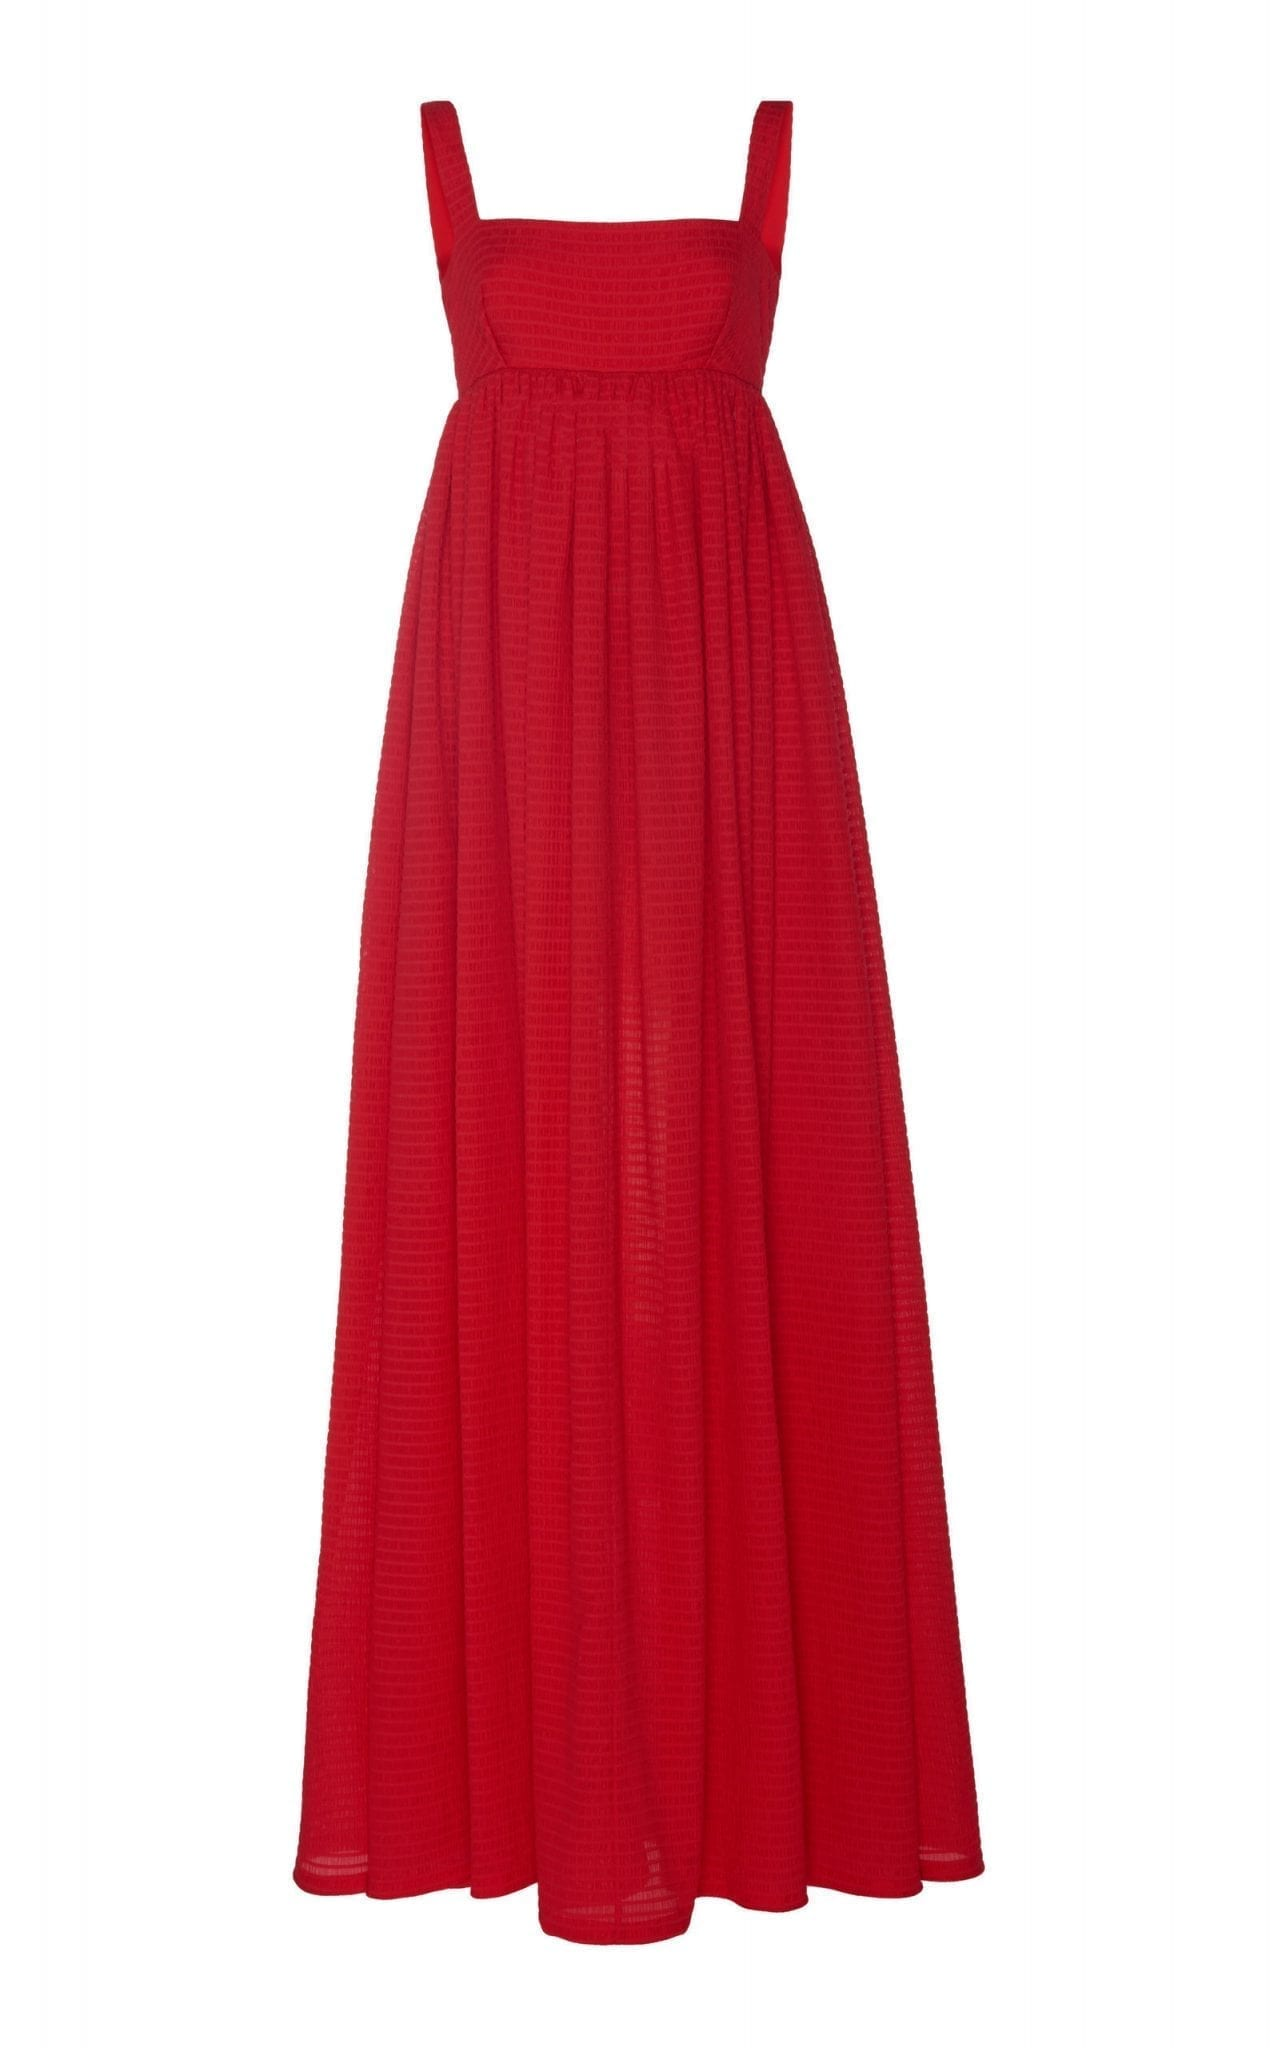 EMILIA WICKSTEAD Evelina Shirred Cupro Maxi Dress